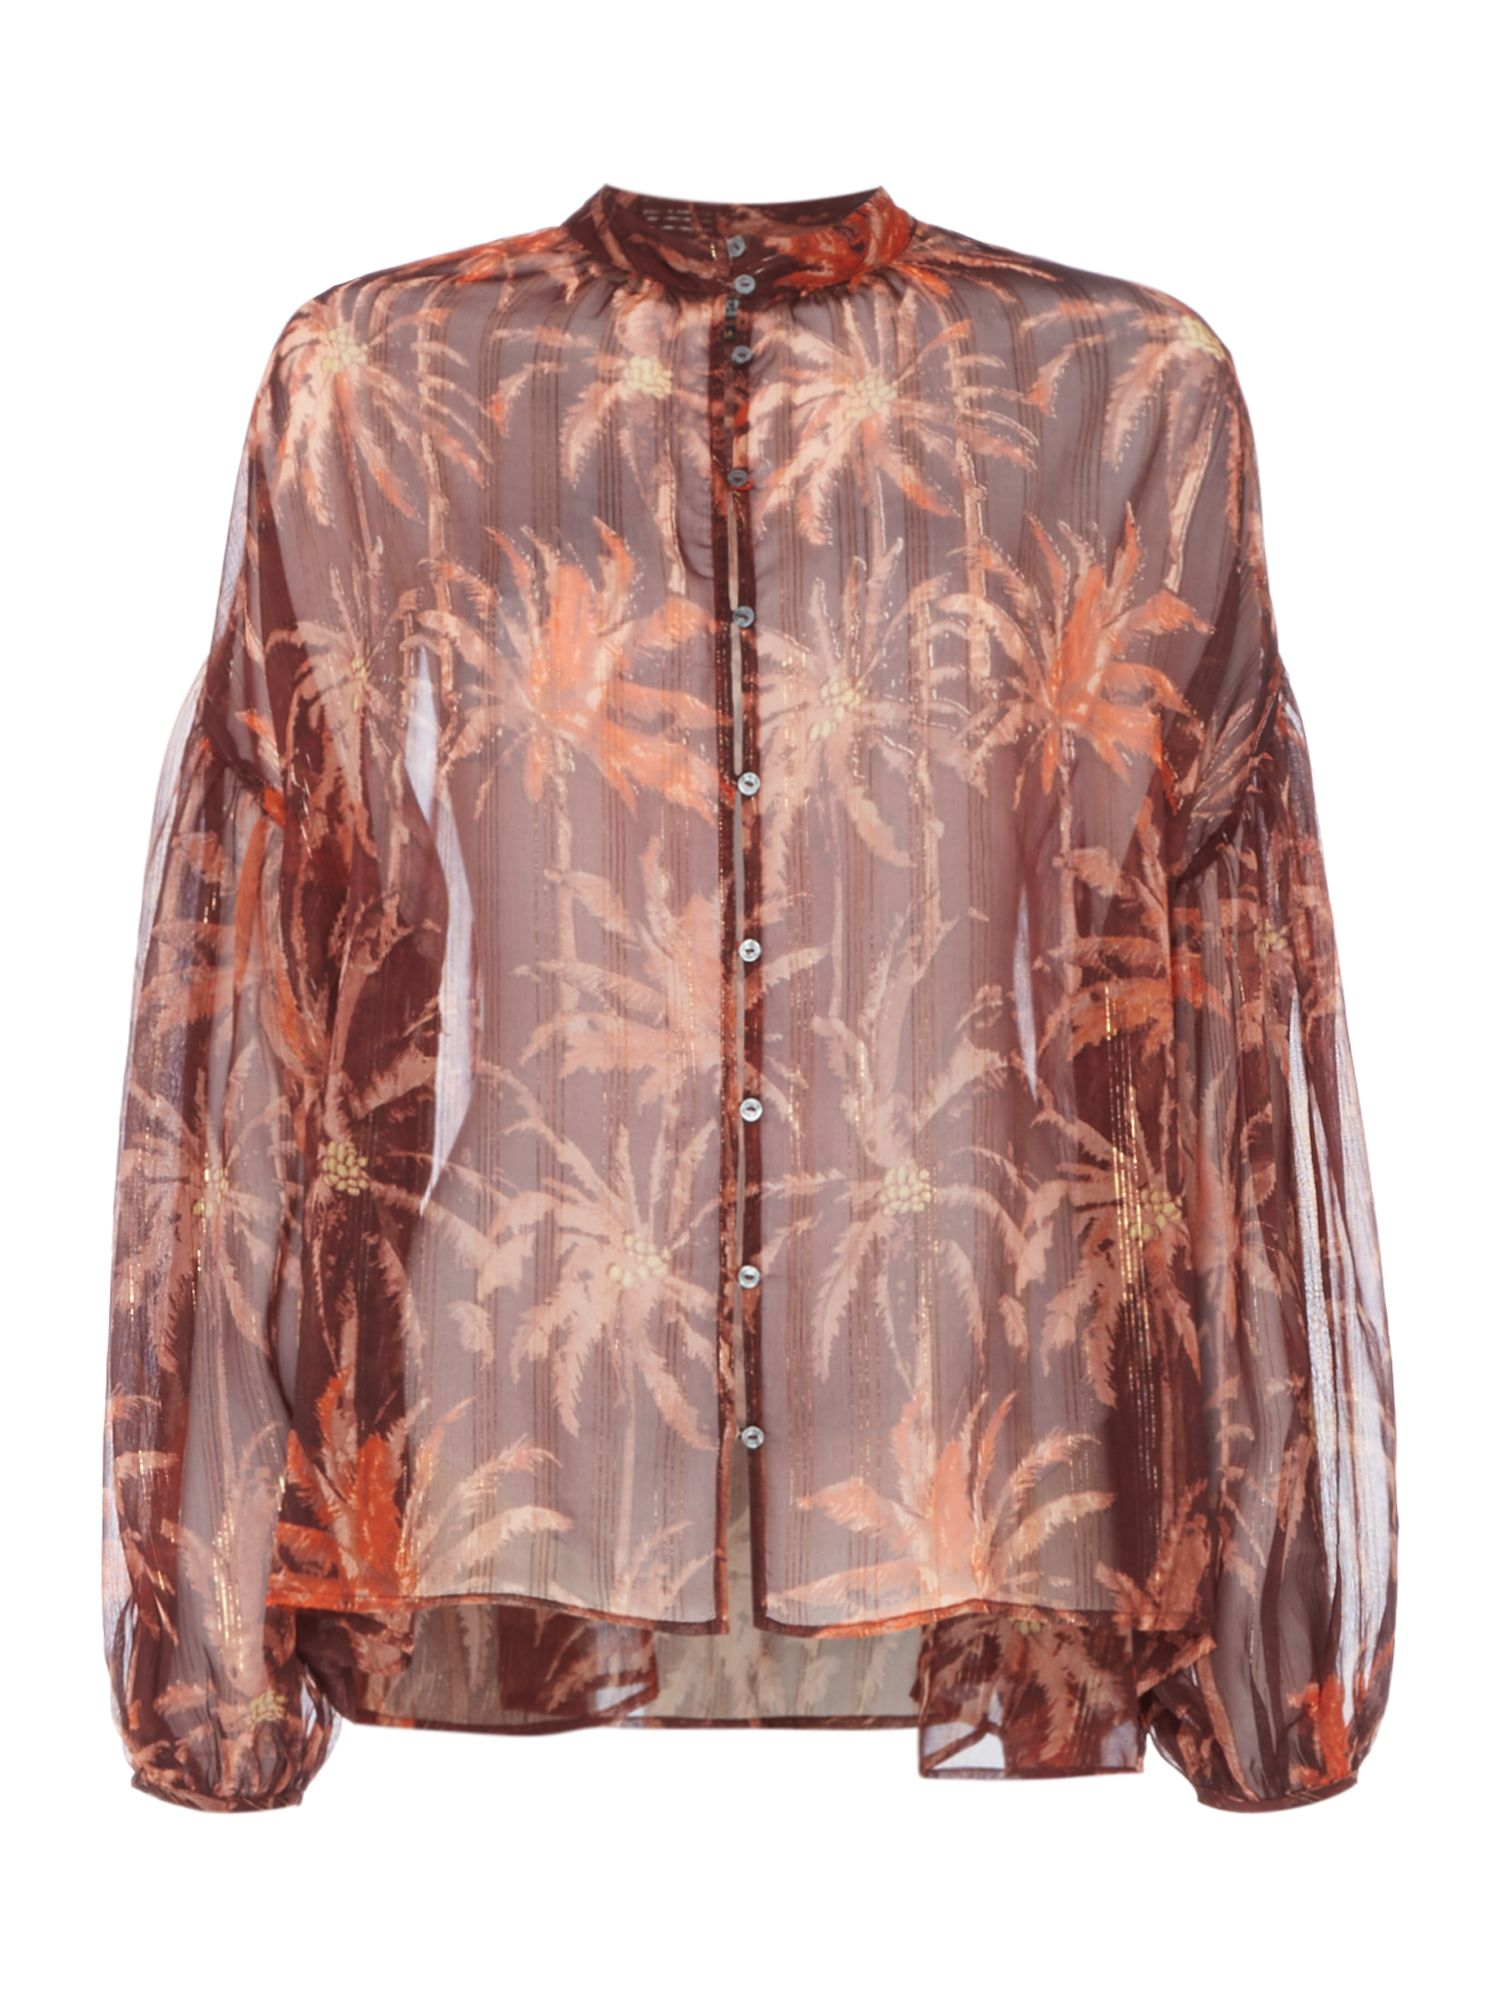 Maison Scotch Dropped shoulder sheer printed Blouse, Multi-Coloured